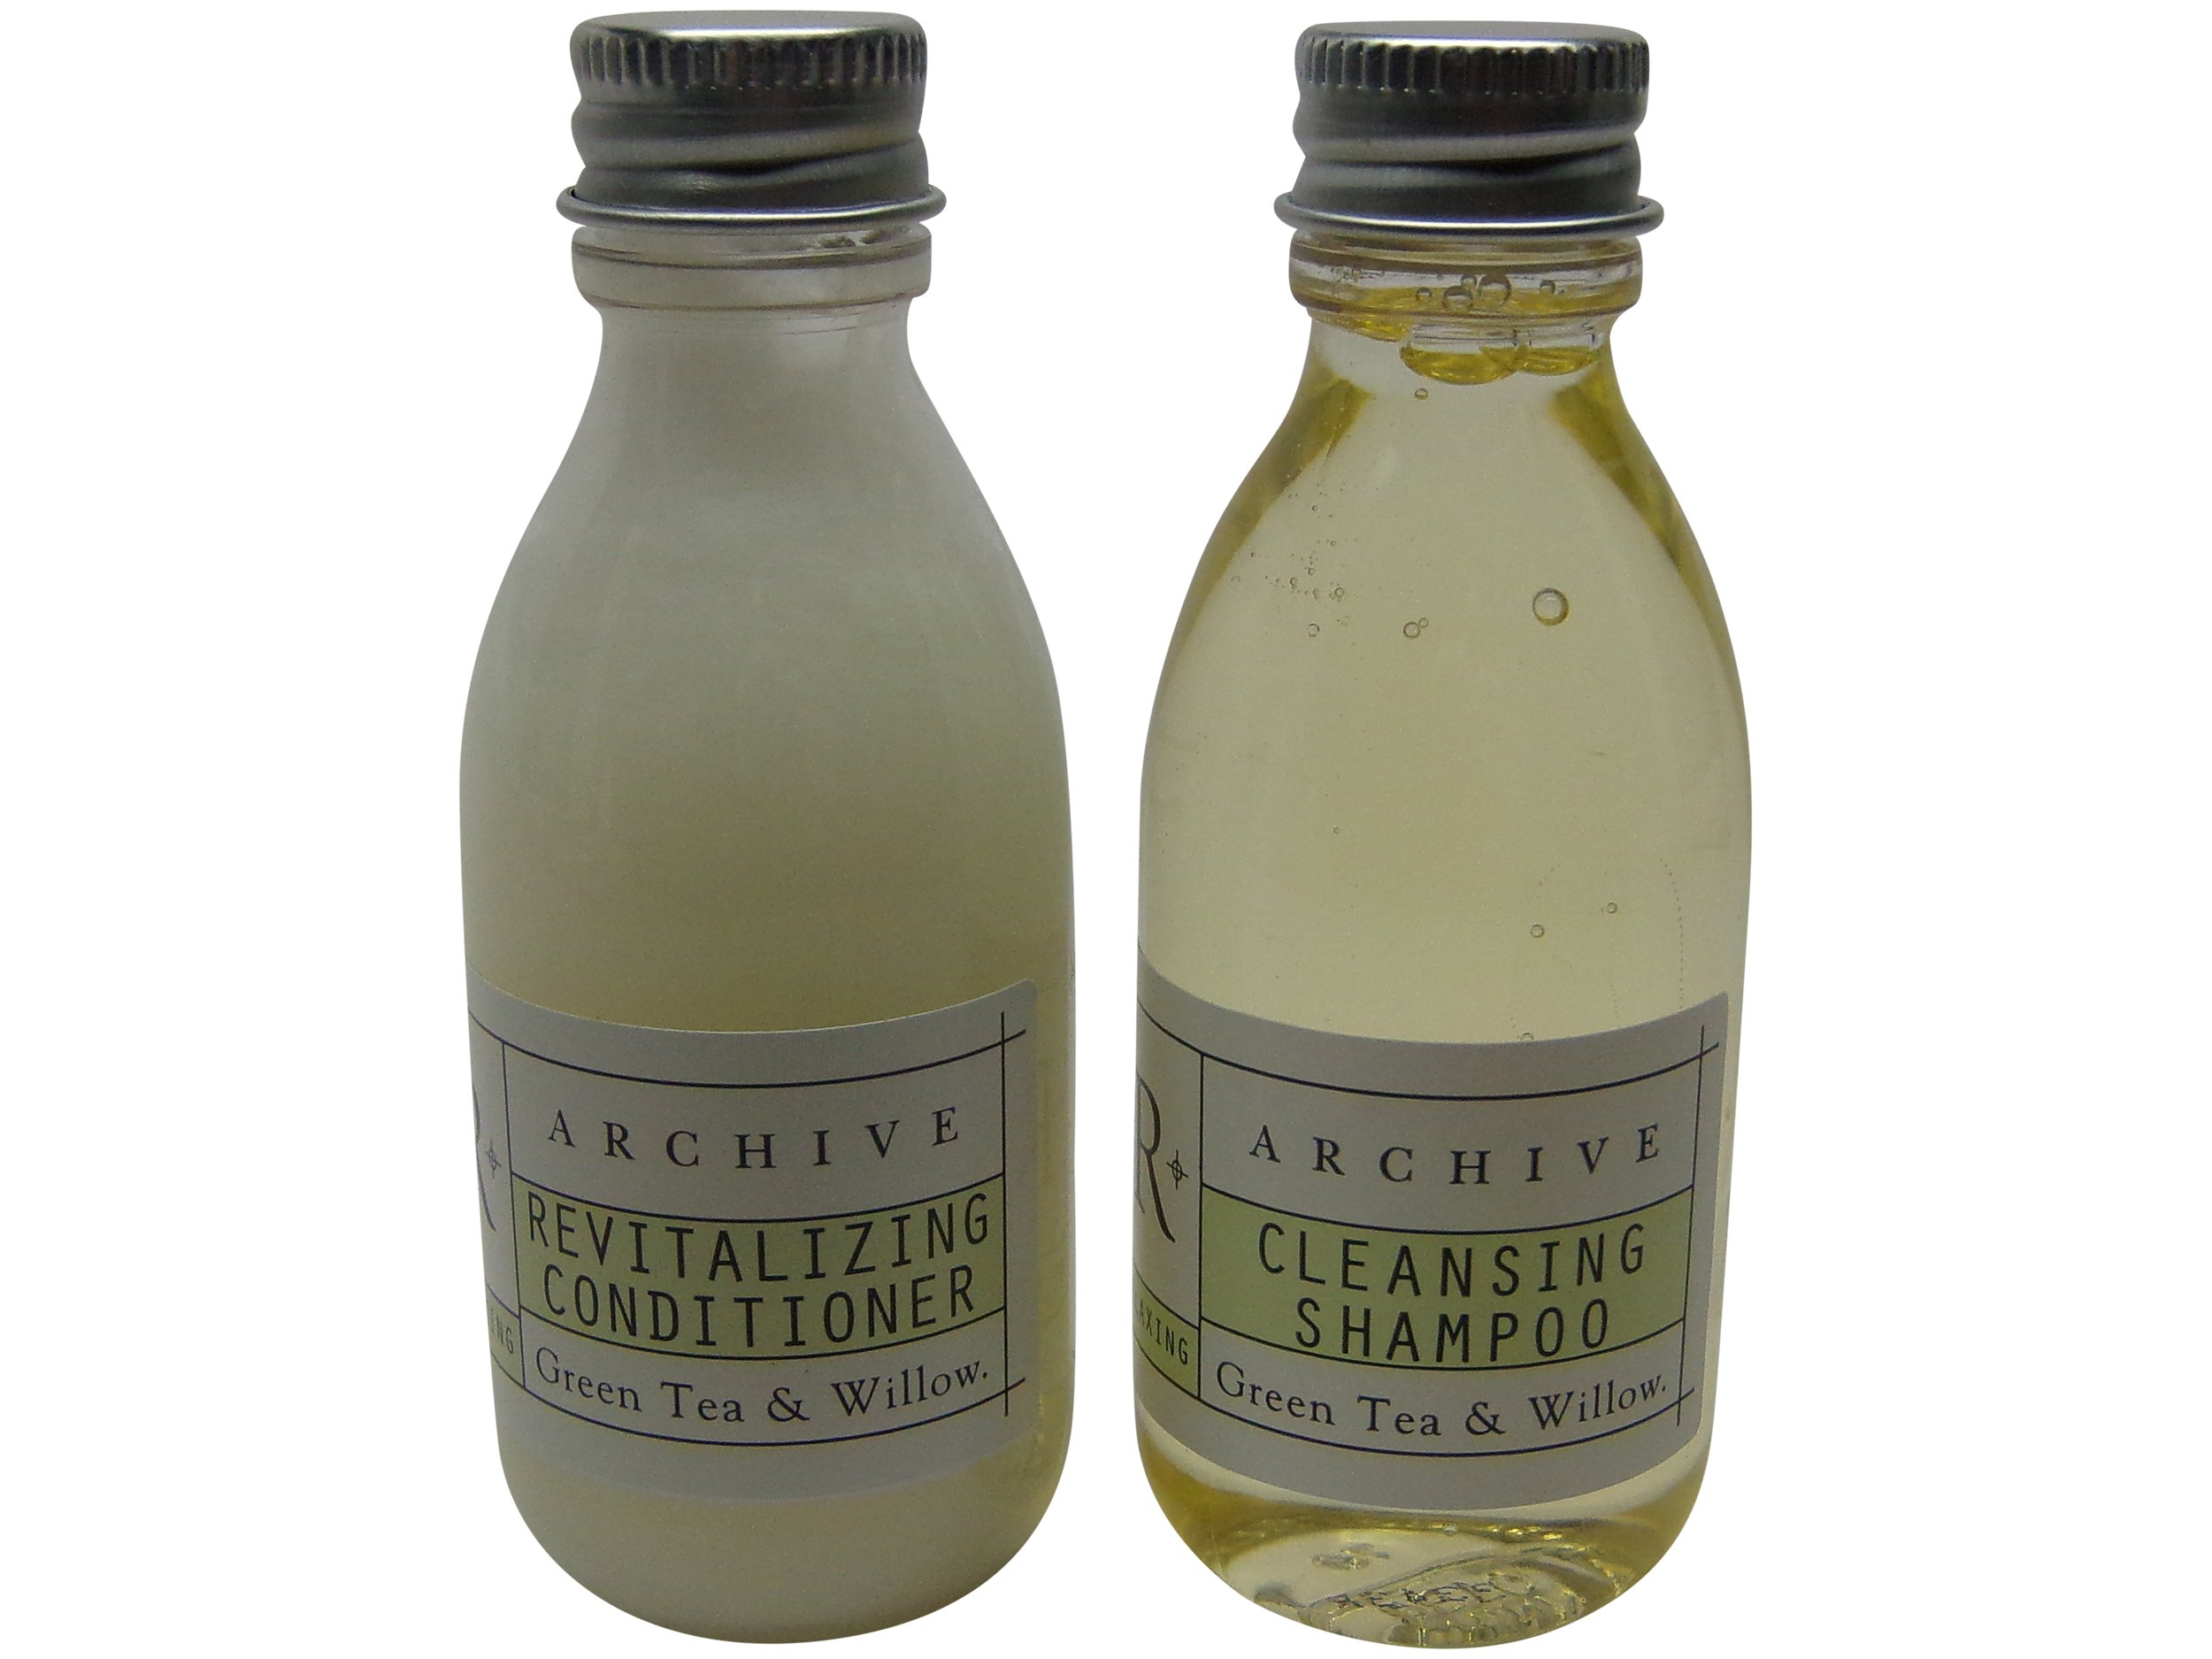 d15c30c0368 Amazon.com   Archive Green Tea   Willow Cleansing Shampoo and Conditioner  lot of 12 Bottles 6 of Each 1.5oz Bottles. Total of 18oz   Hair Shampoos    Beauty